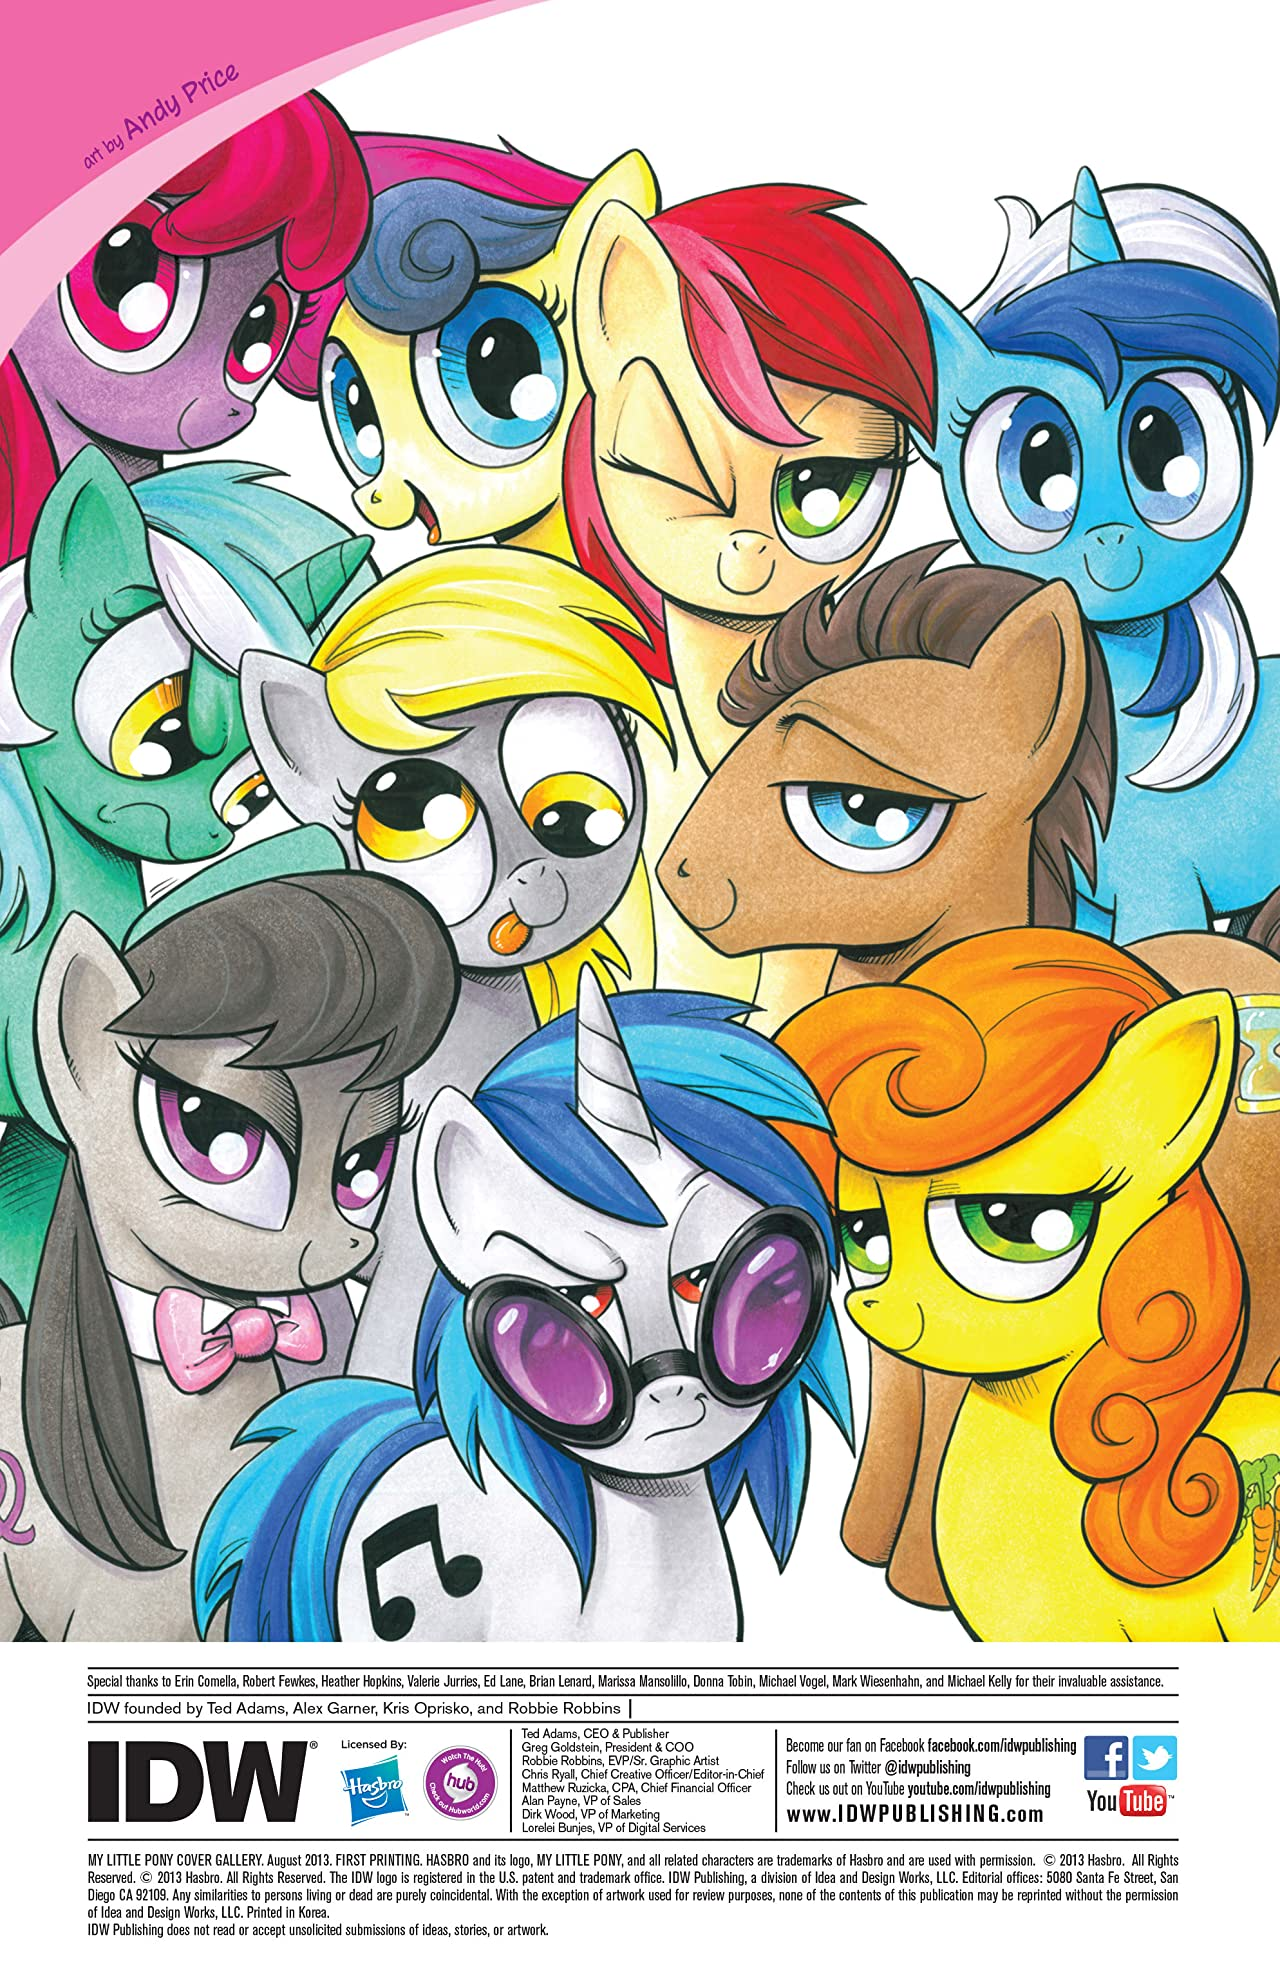 My Little Pony Cover Gallery #1